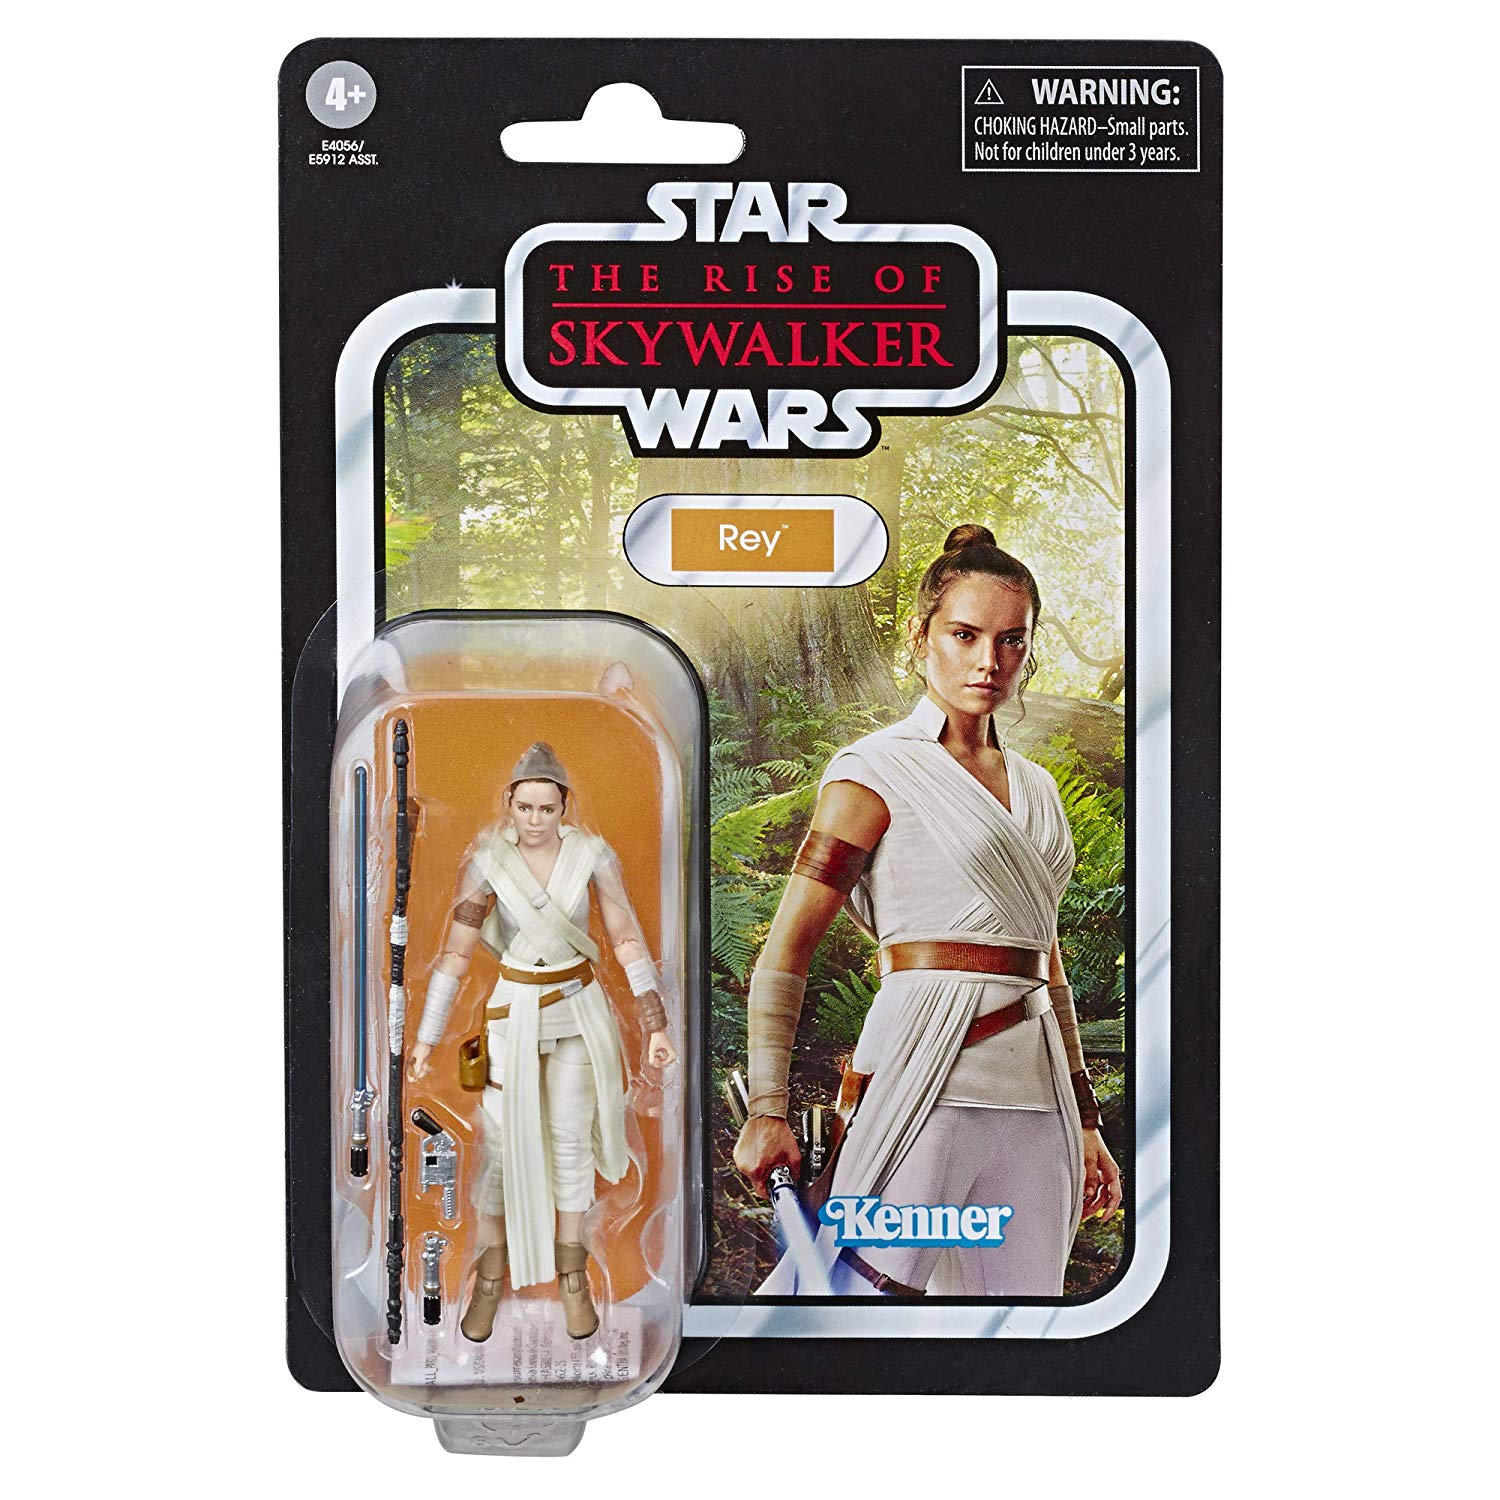 8172Bzz1eZ4L. SL1500 - Star Wars The Vintage Collection Rey Toy Action Figure